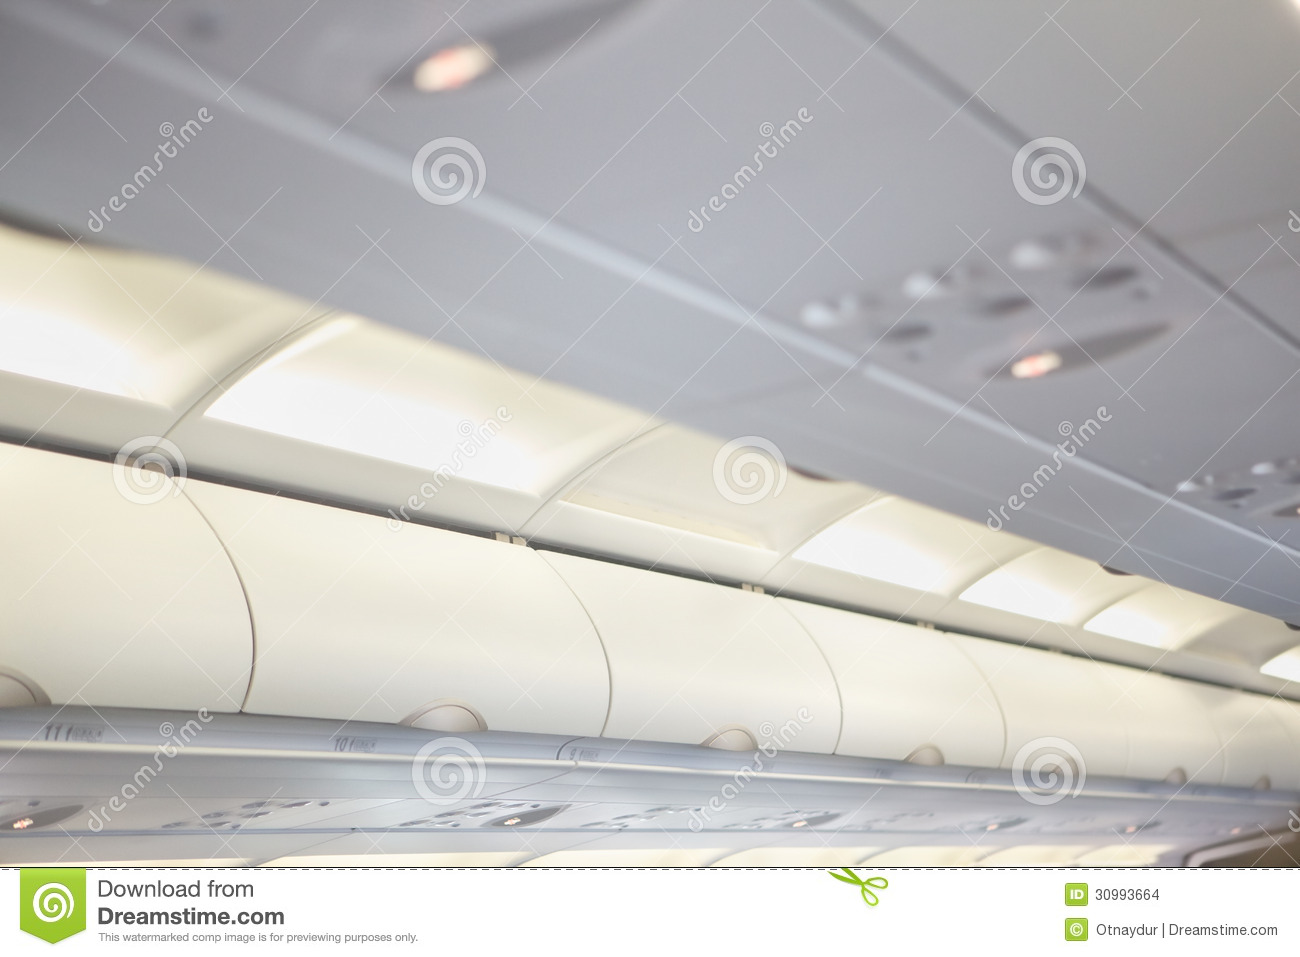 Luggage plane clipart overhead.